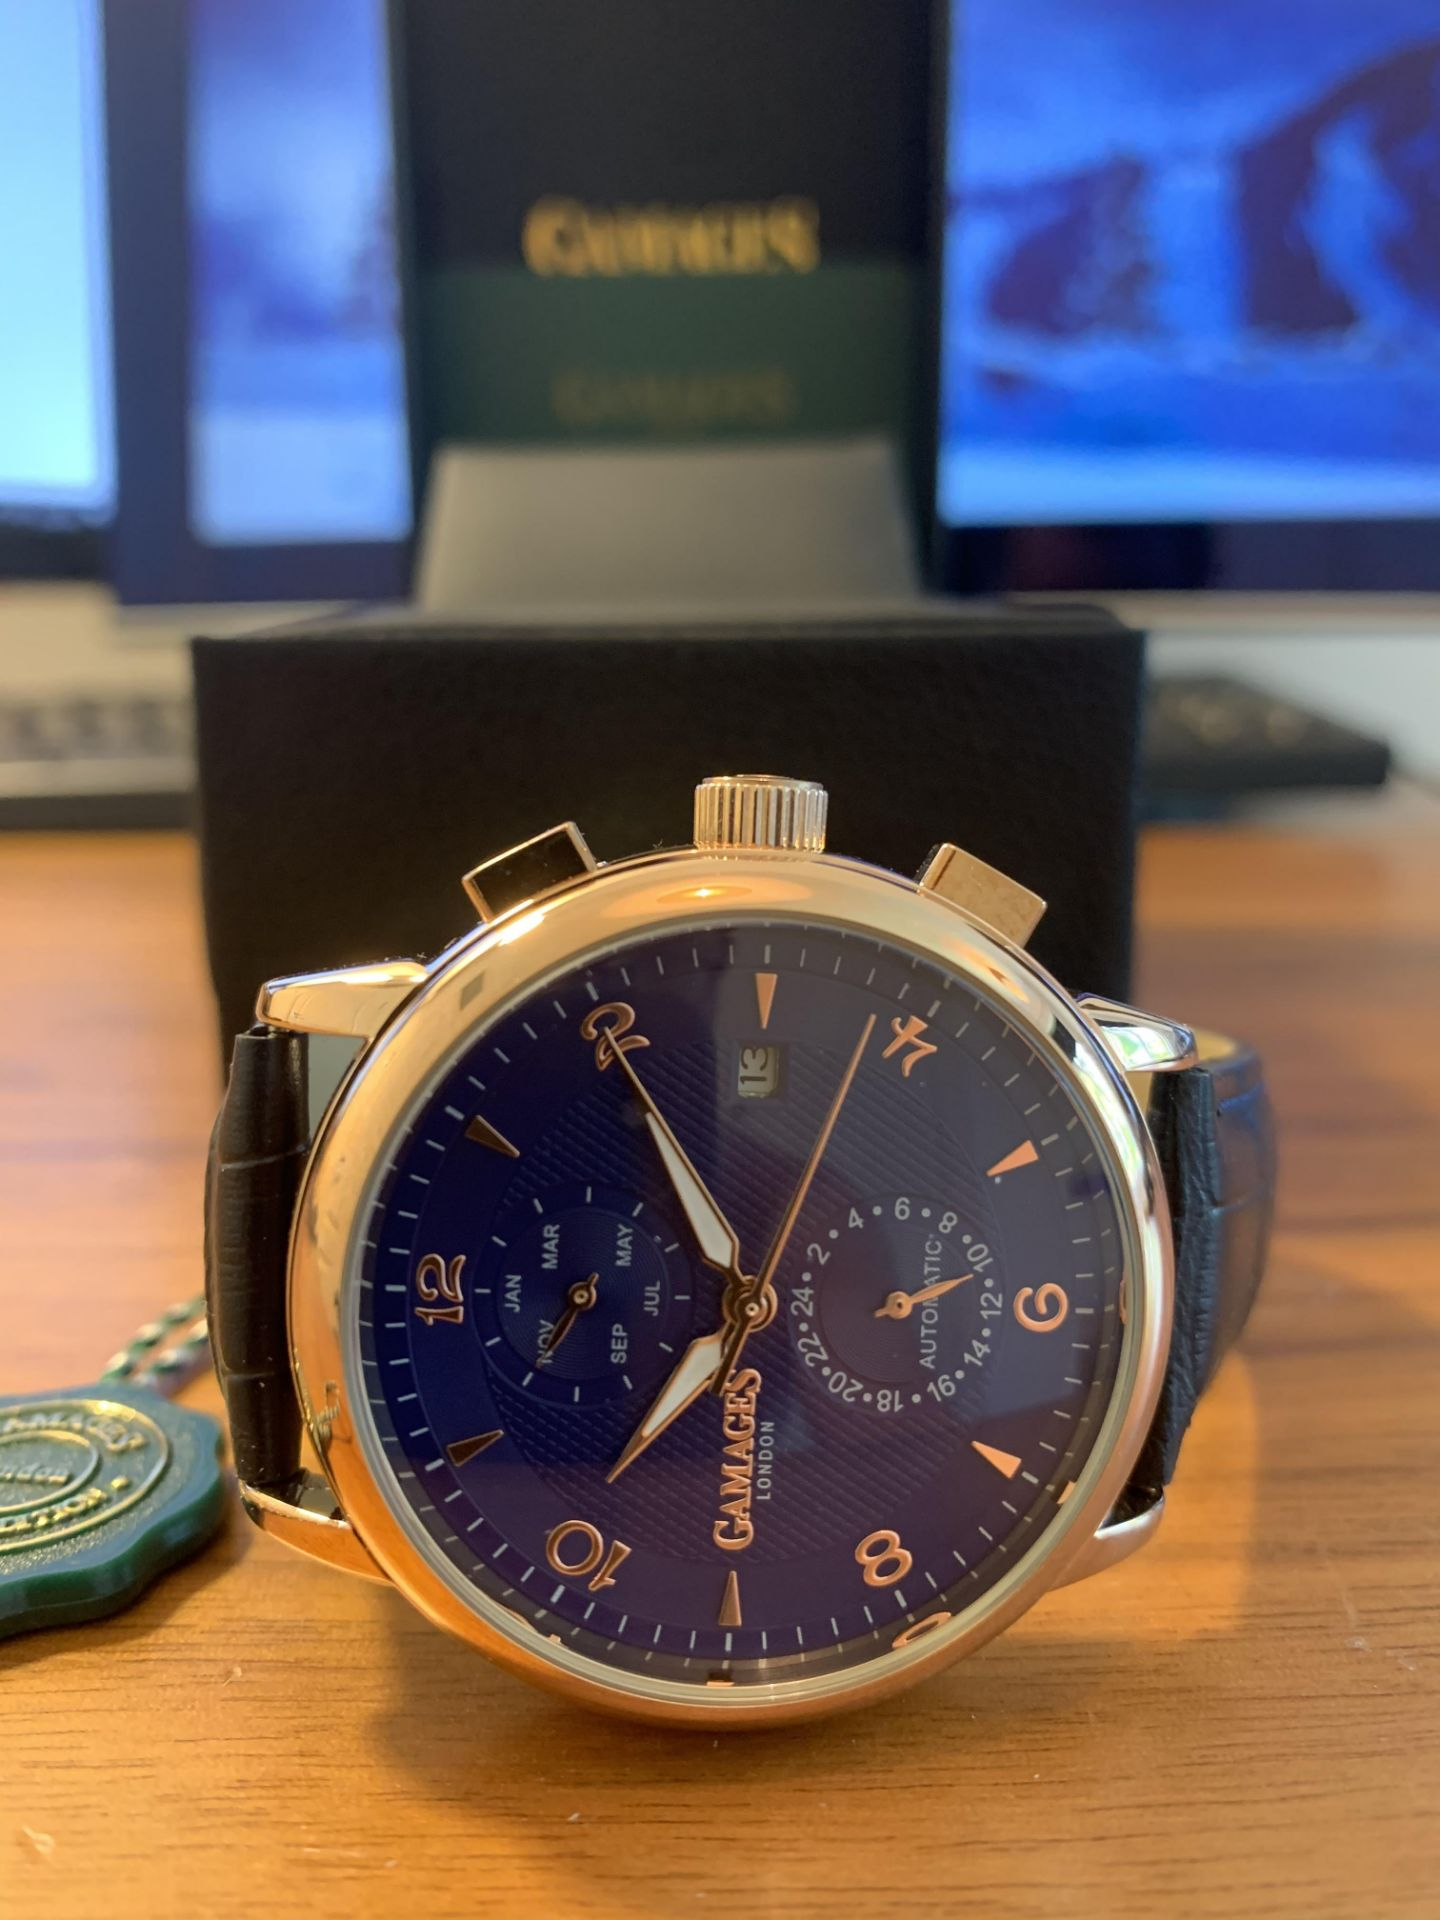 Limited Edition Hand Assembled Gamages Mystique Blue – 5 Year Warranty & Free Delivery - Image 3 of 4